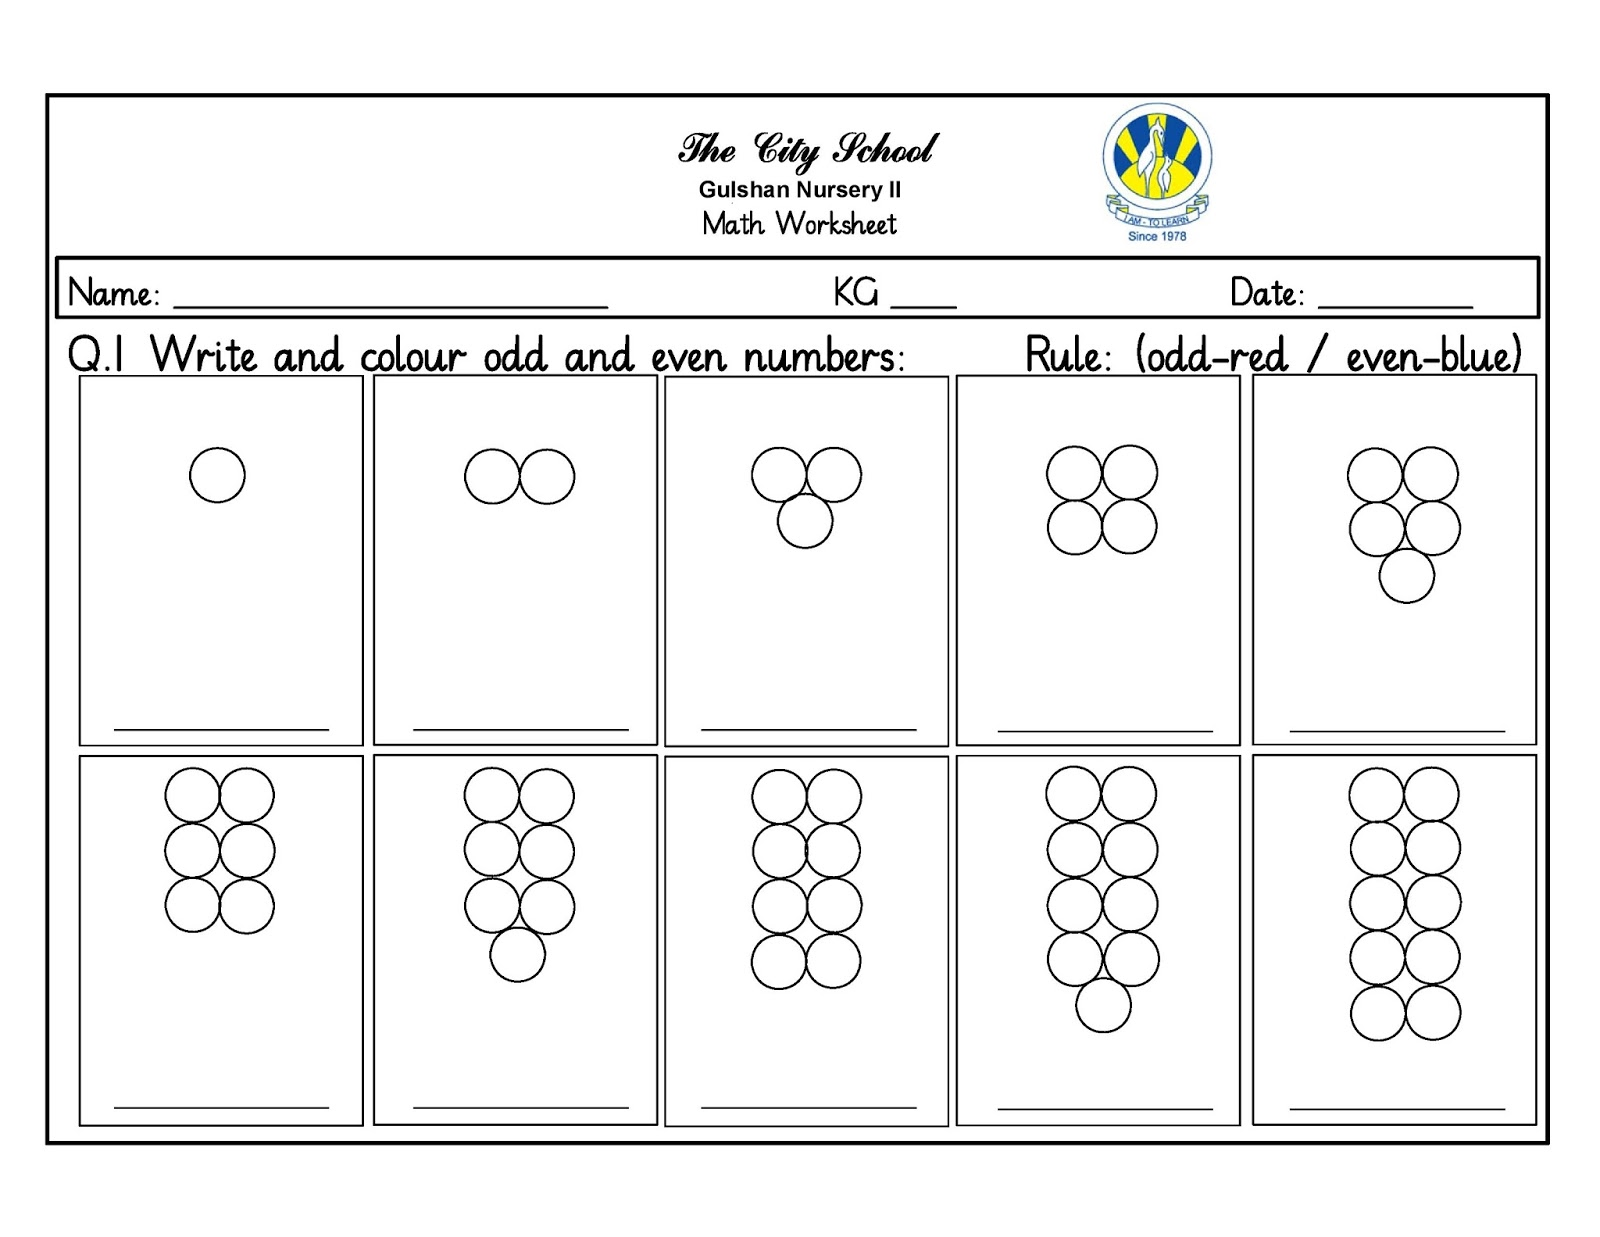 Sr Gulshan The City Nursery Ii English And Math Worksheets